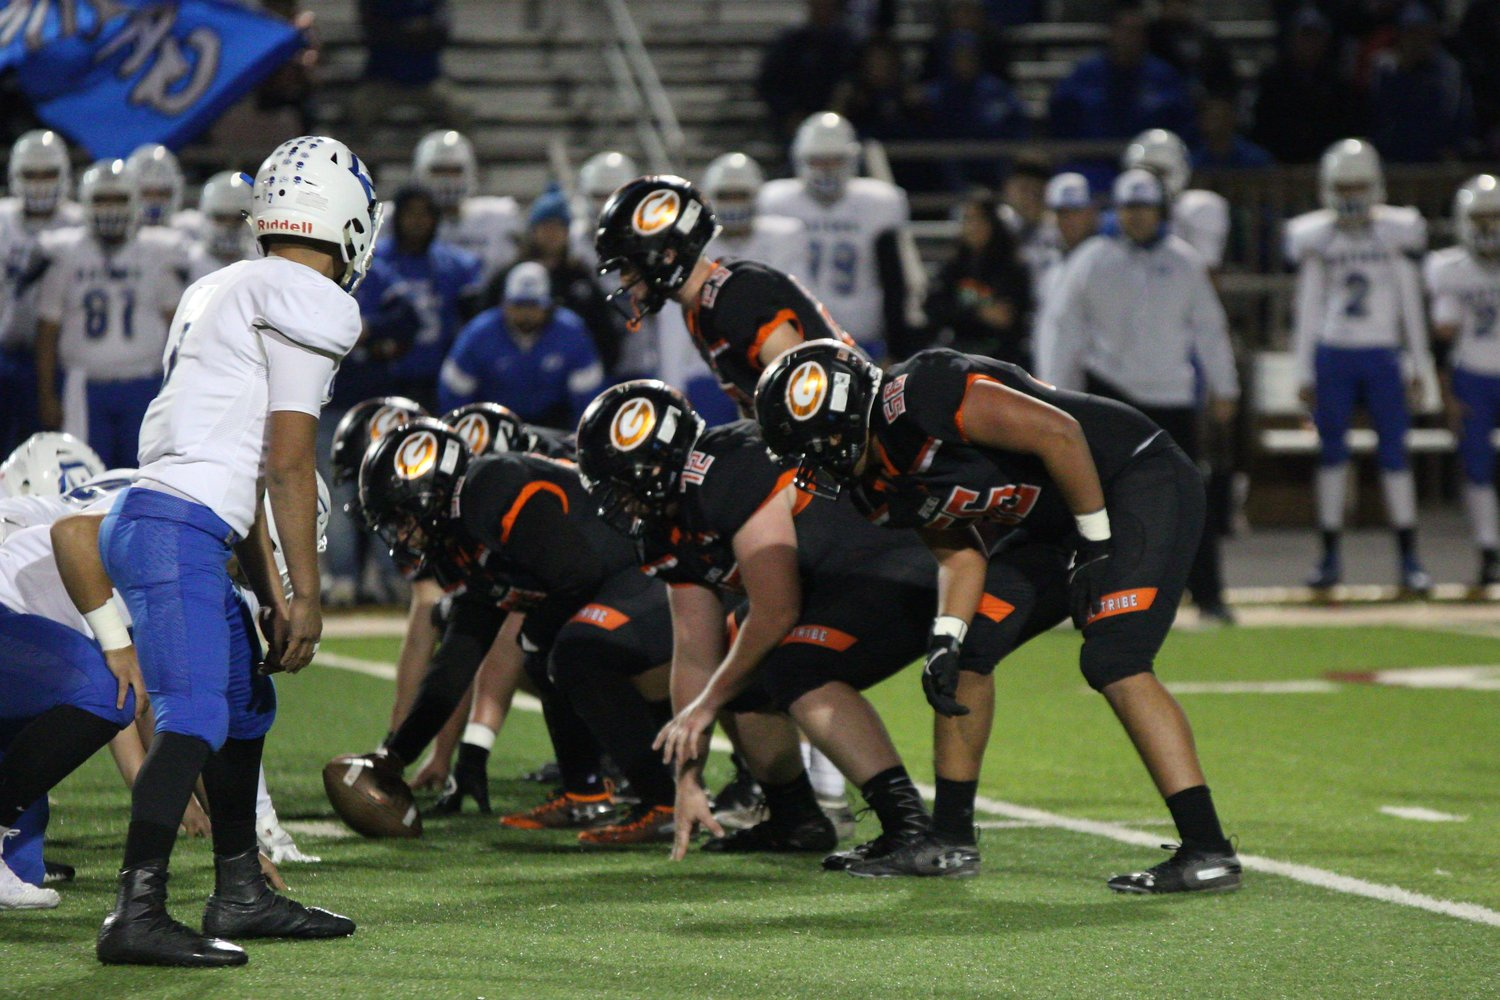 Gonzales head coach Mike Waldie gave props to his offensive line, who led the way in the Apaches' offensive attack in their 21-point victory.